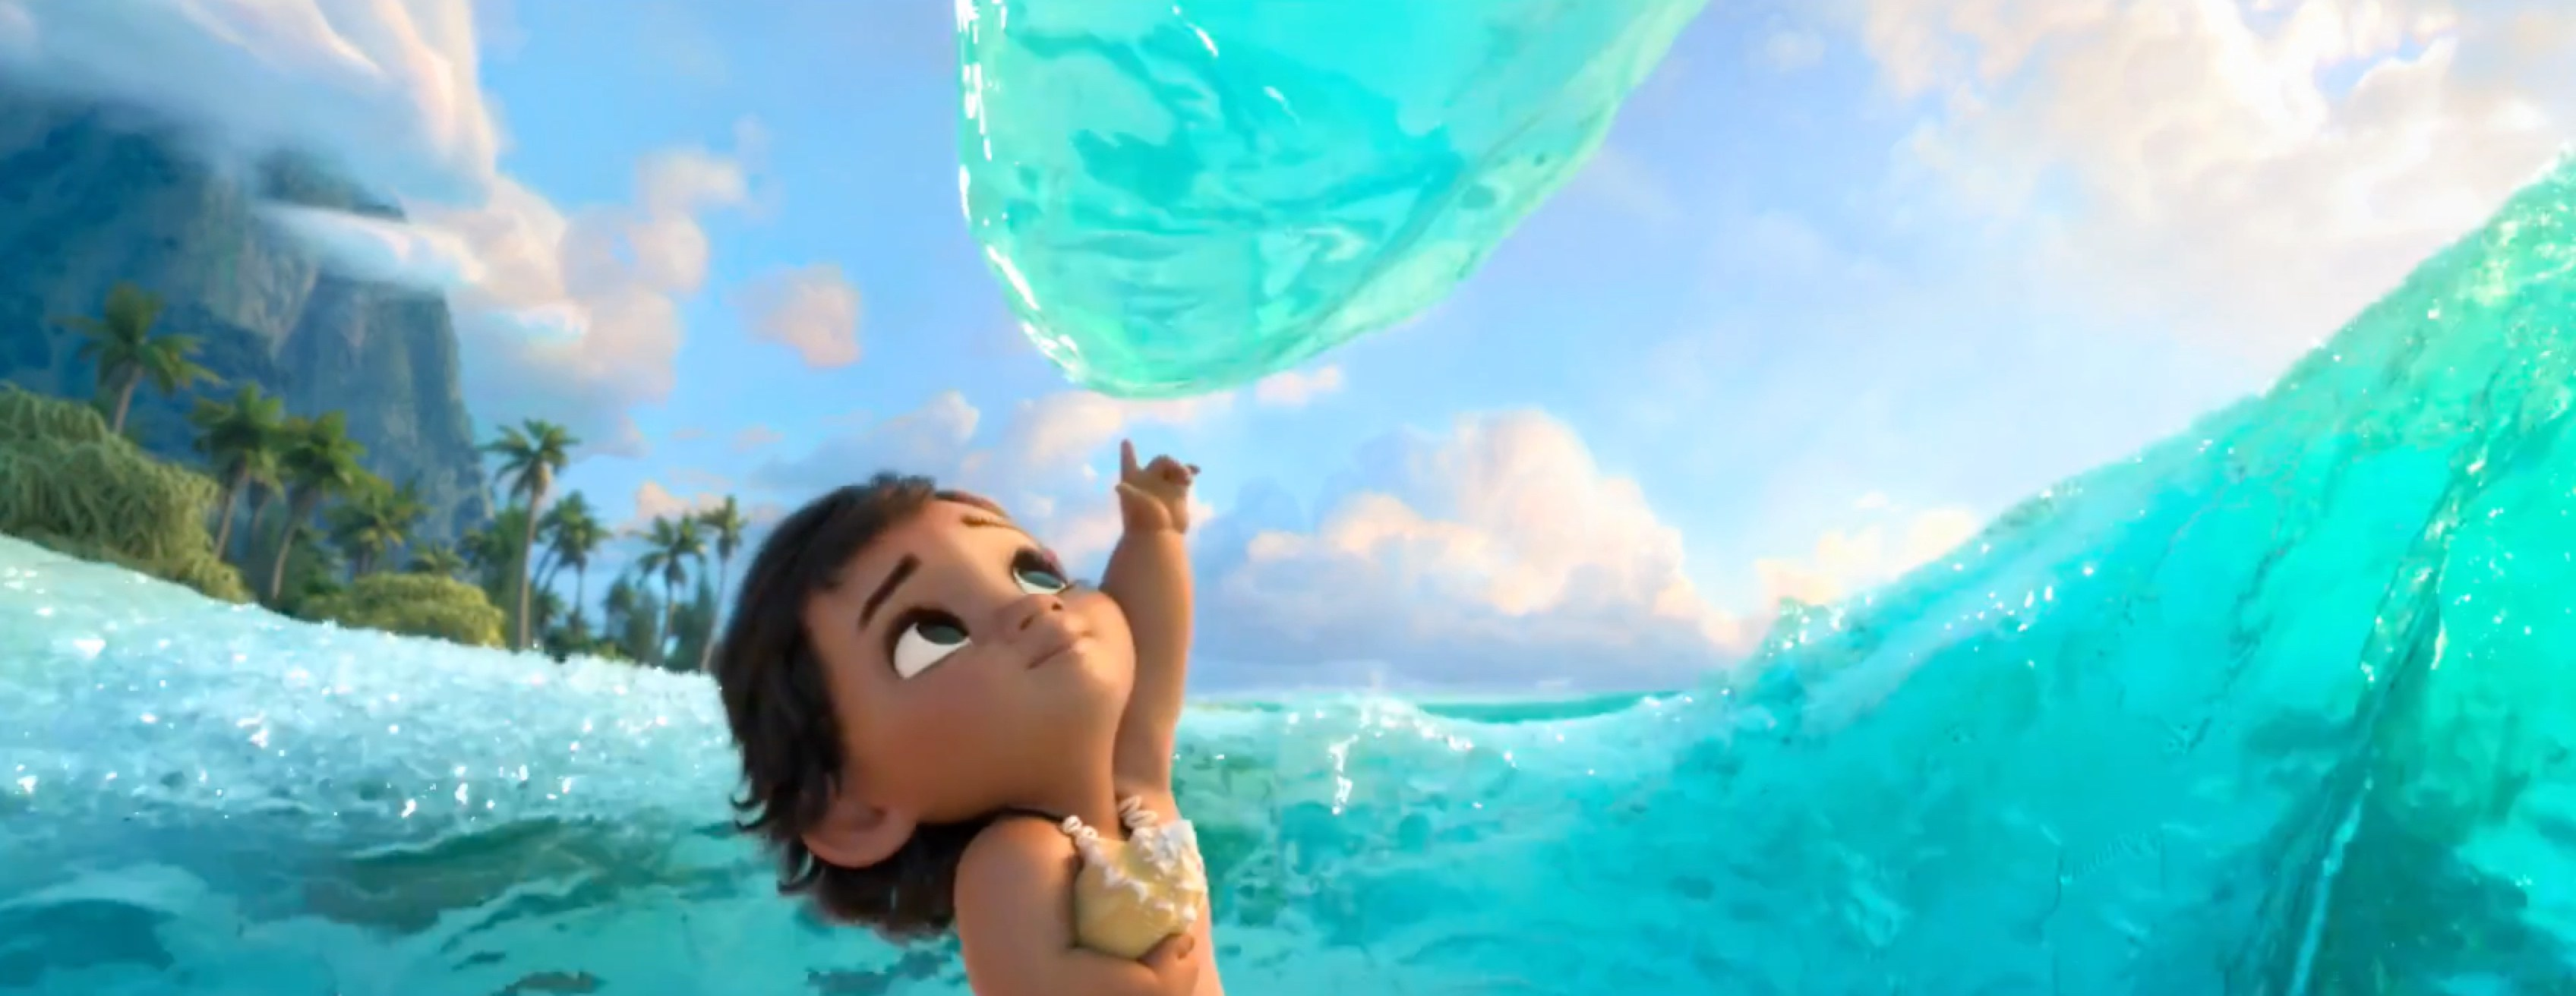 Otai Inspired Watermelon Drink to Celebrate Moana on Blu ray furthermore Why 'Moana's' main demigod looks so much   and so little   like besides  likewise Disney Moana Mega Maui Figure   Walmart also All Of Maui's Tattoos In 'Moana' Show How Culturally Important The together with 38 best Moana Coloring Pages images on Pinterest together with Moana trailer  Set off on a Pacific adventure with Disney's latest likewise Maui   Moana Wikia   FANDOM powered by Wikia additionally The Hidden Meaning In  Moana furthermore Disney's Moana Coloring Pages and Activity Sheets Printables in addition . on how and why maui got so big in moana the new york times samller coloring pages